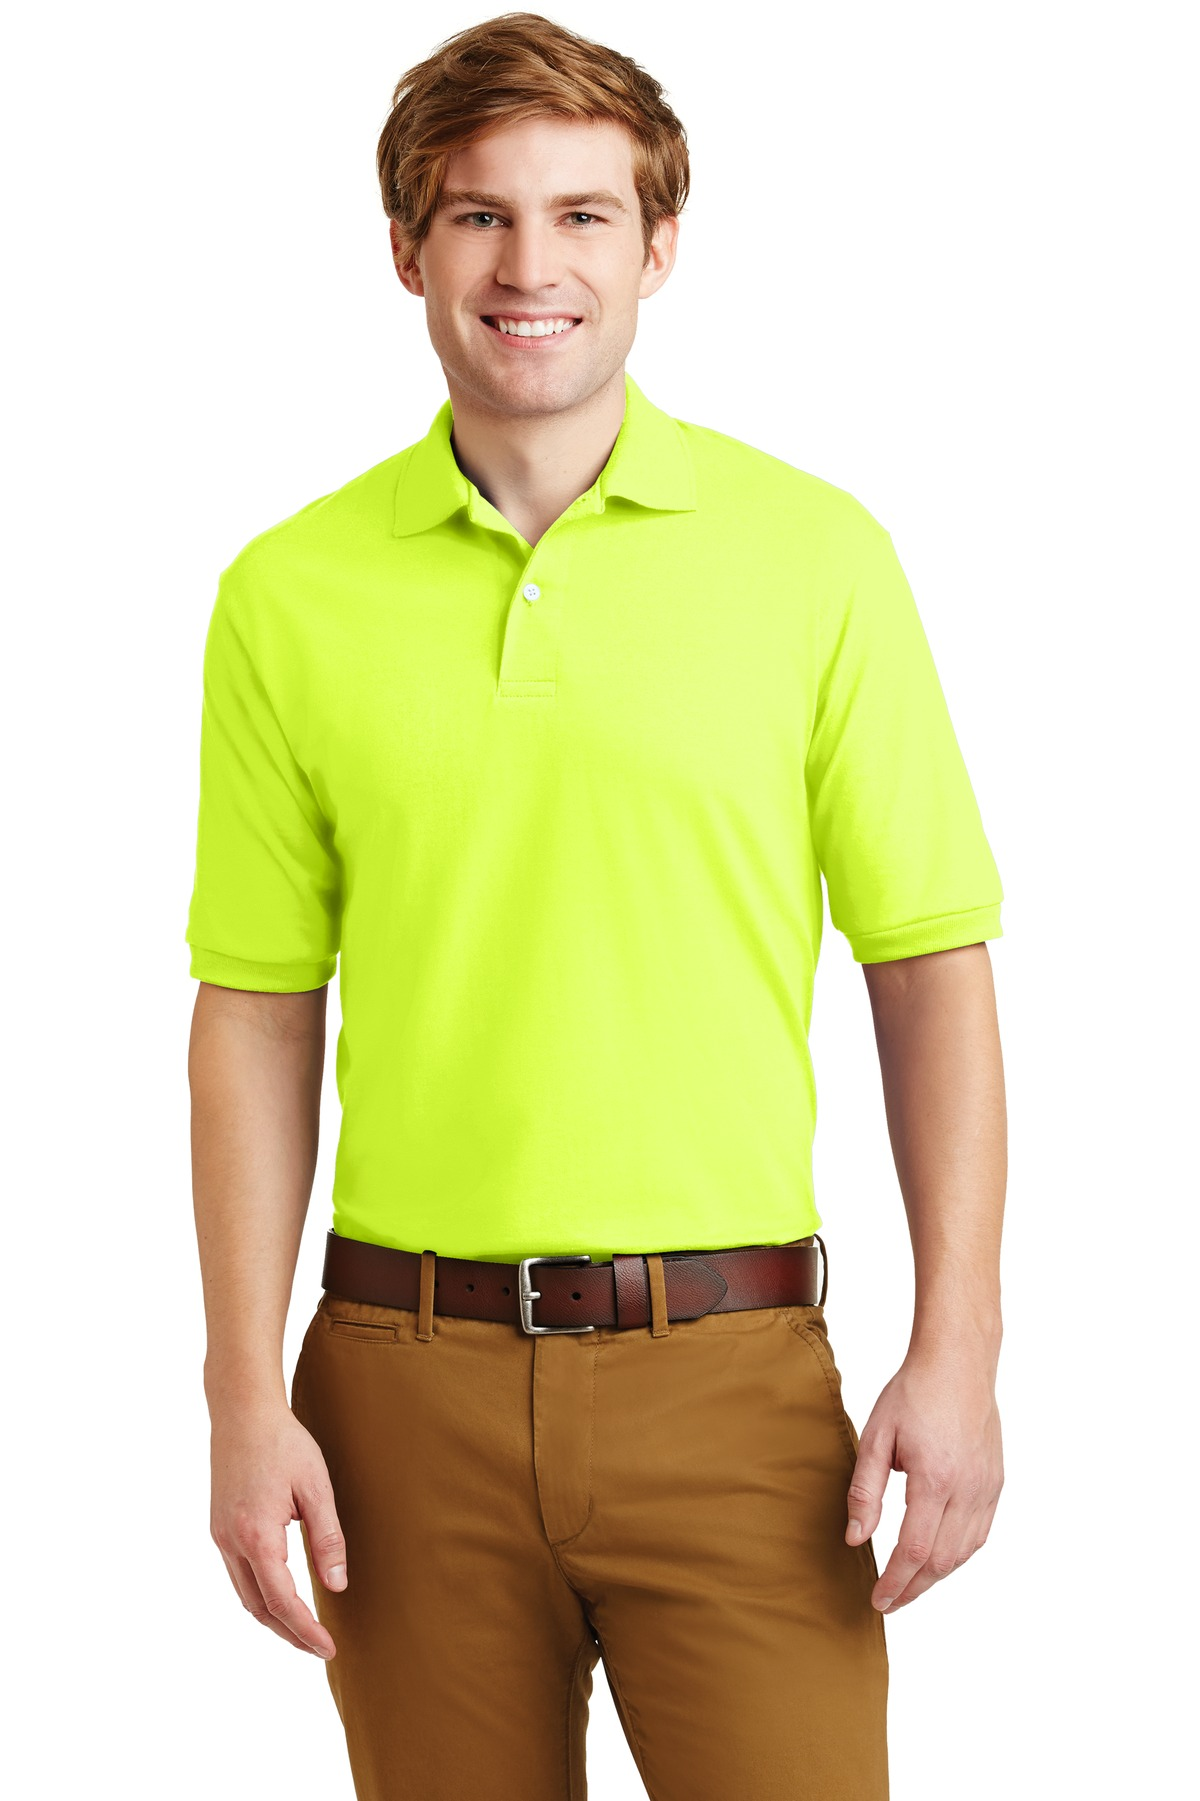 Jerzees® - SpotShield 5.6-Ounce Jersey Knit Sport Shirt.-Jerzees